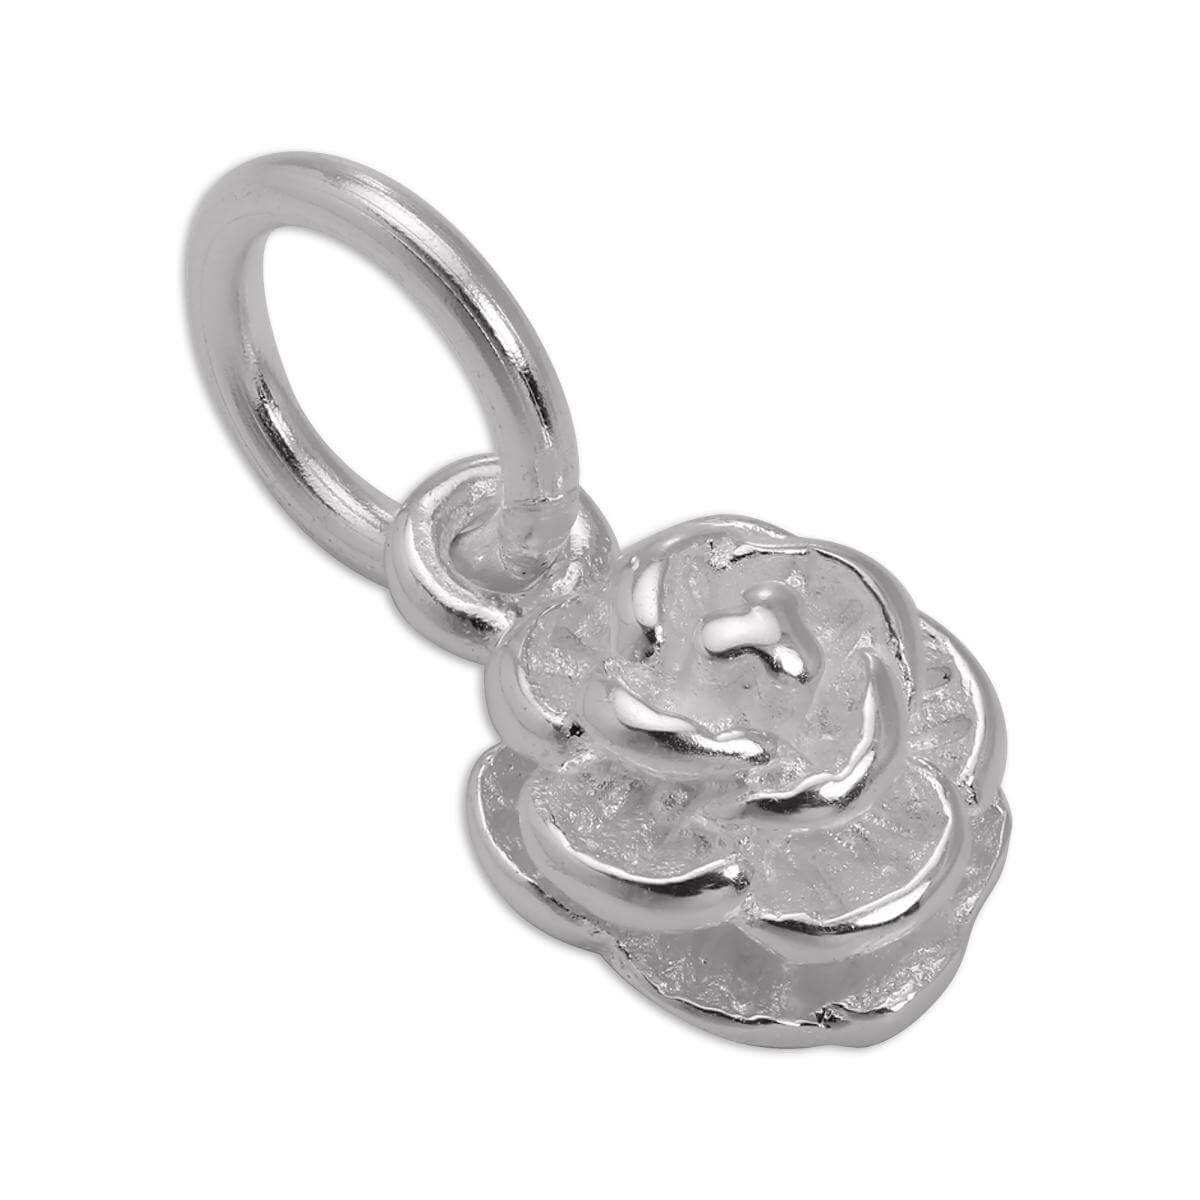 Small Sterling Silver Rose Bud Charm